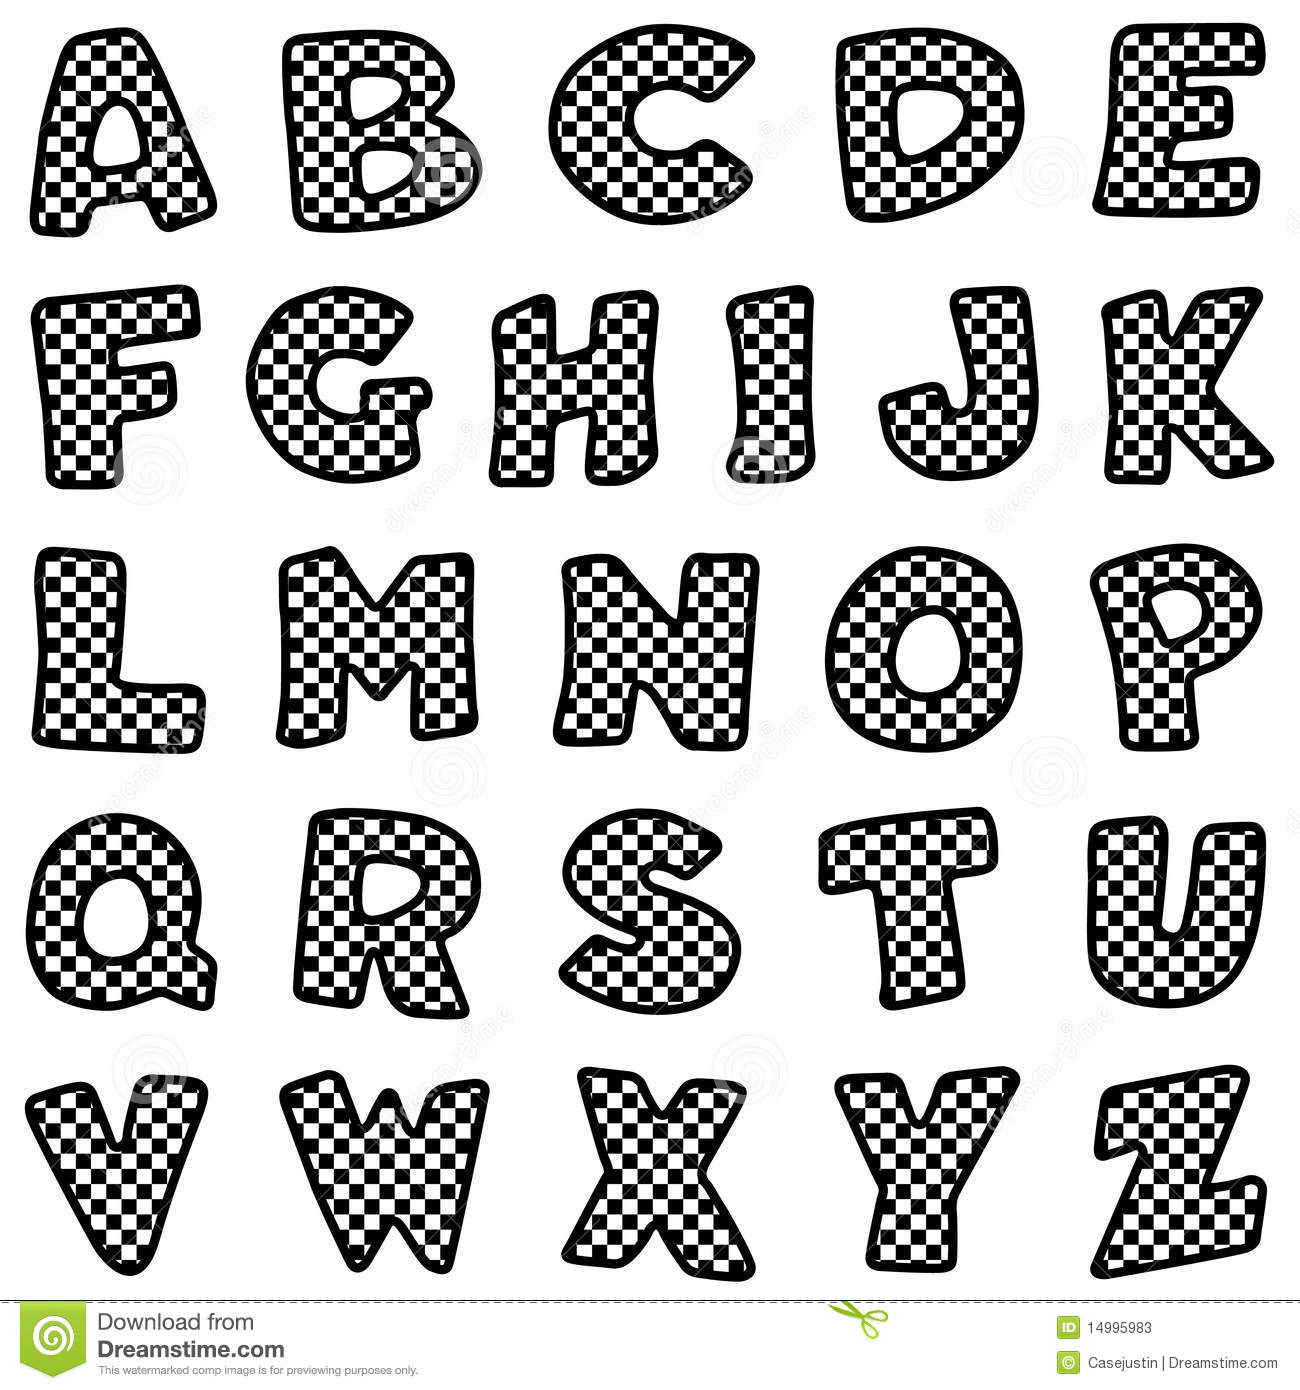 Finish The Drawing Whats Missing likewise Stock Illustration Cat Face Paw Seamless Pattern Design Print Image53024580 additionally 1800 Square Feet 4 Bedrooms 3 Bathroom Cottage House Plans 3 Garage 30439 together with Five Characteristics Of Being A Good Friend 204020 together with Stock Photos Black White Check Alphabet Image14995983. on arts and crafts plans